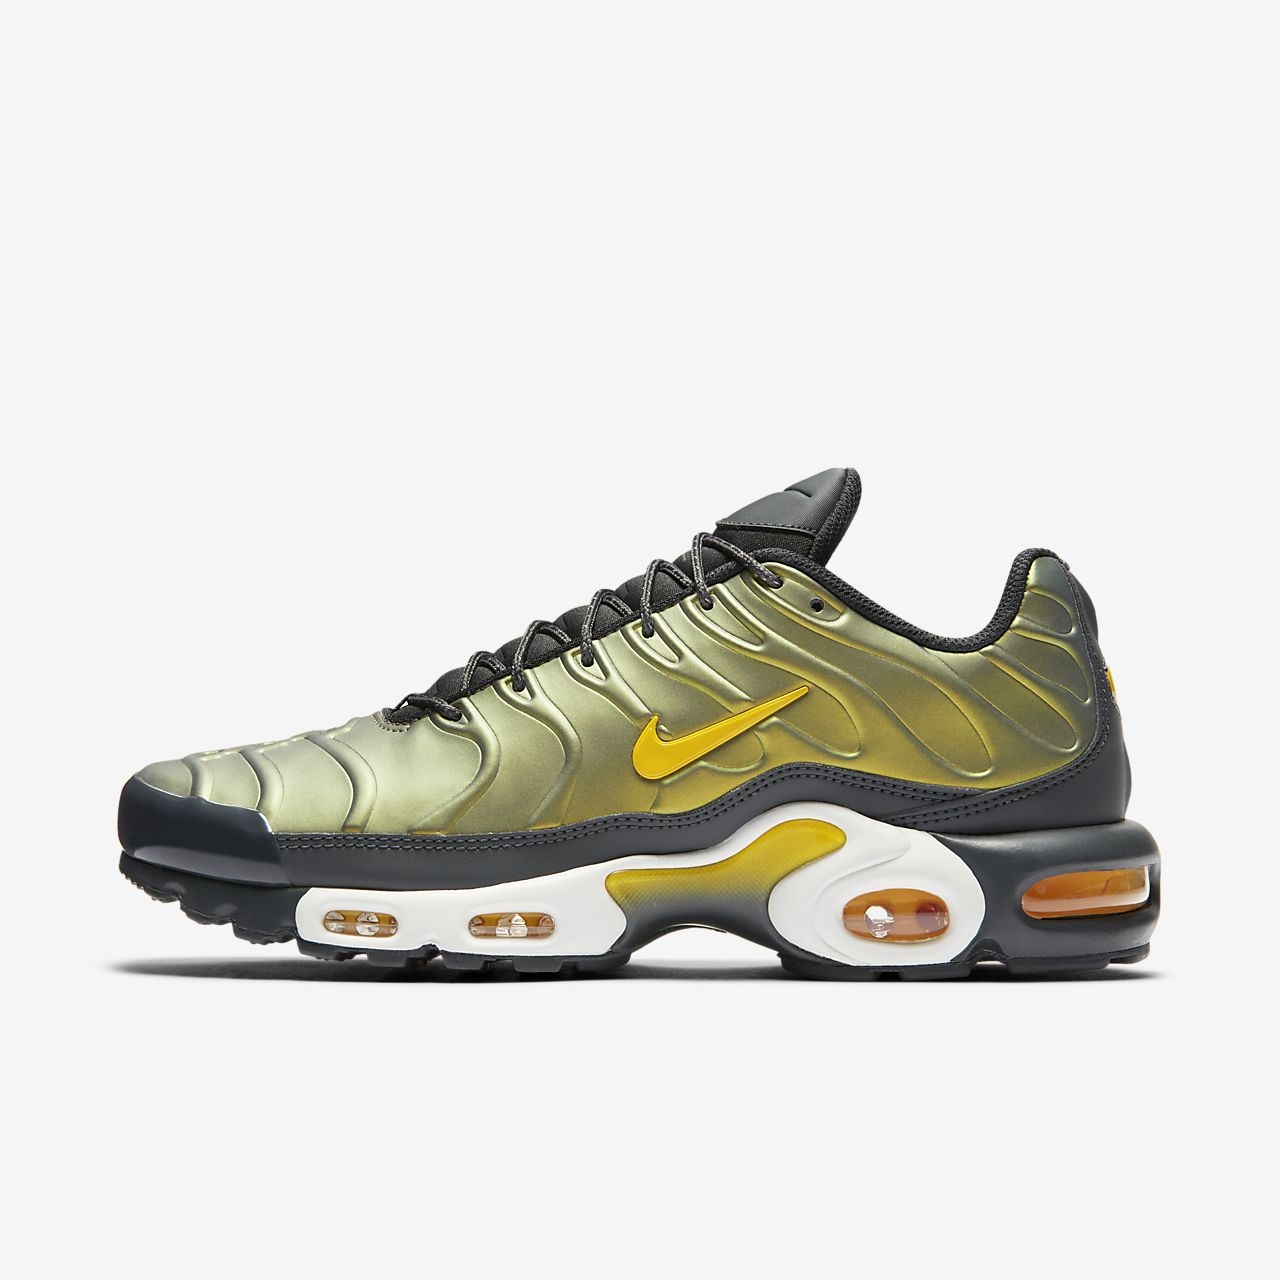 new styles 1b7b9 46077 ... Chaussure Nike Air Max Plus SE pour Homme